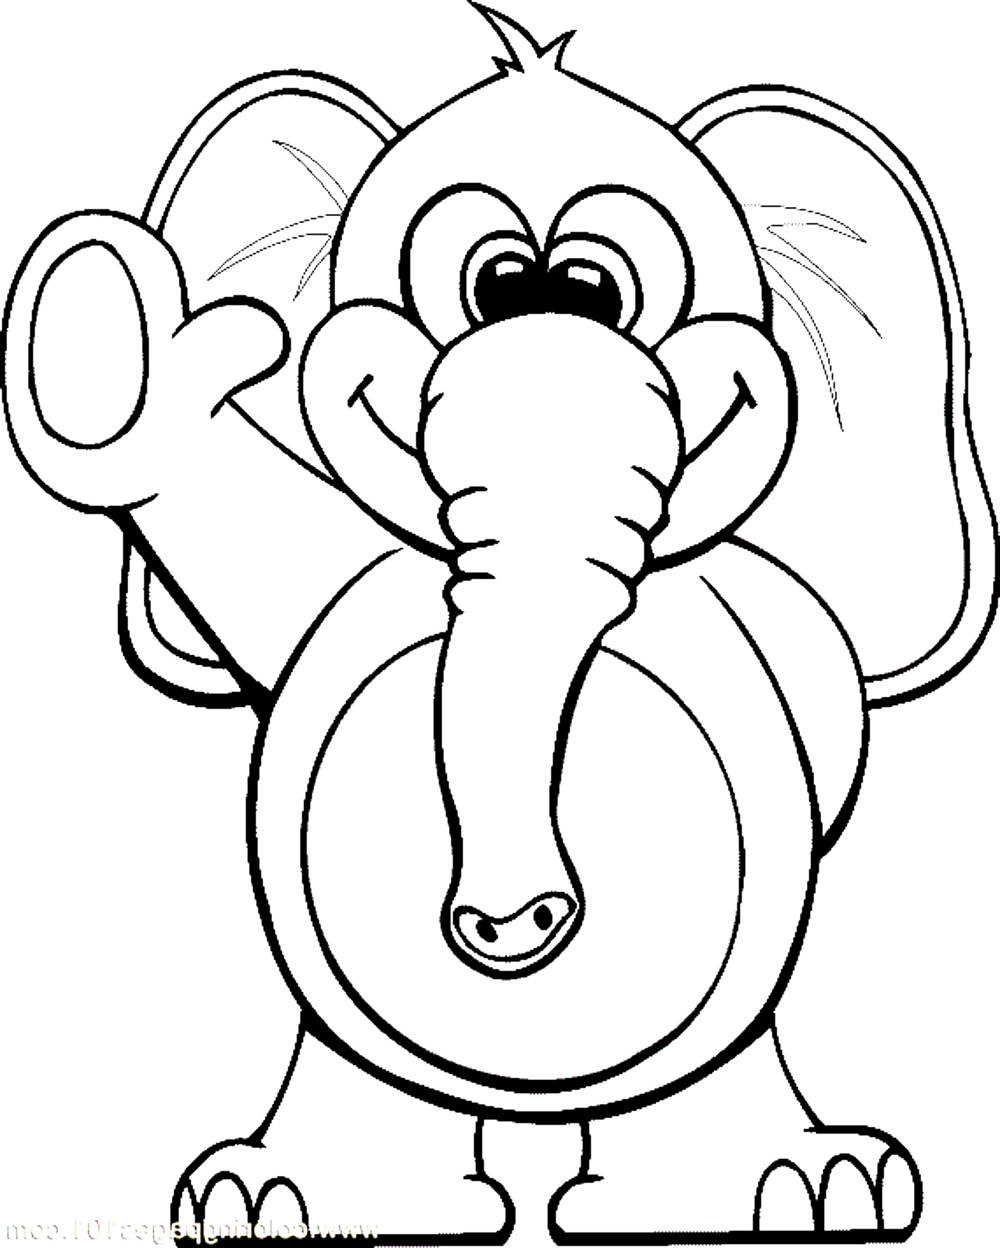 coloring pages elephants print download teaching kids through elephant coloring elephants coloring pages